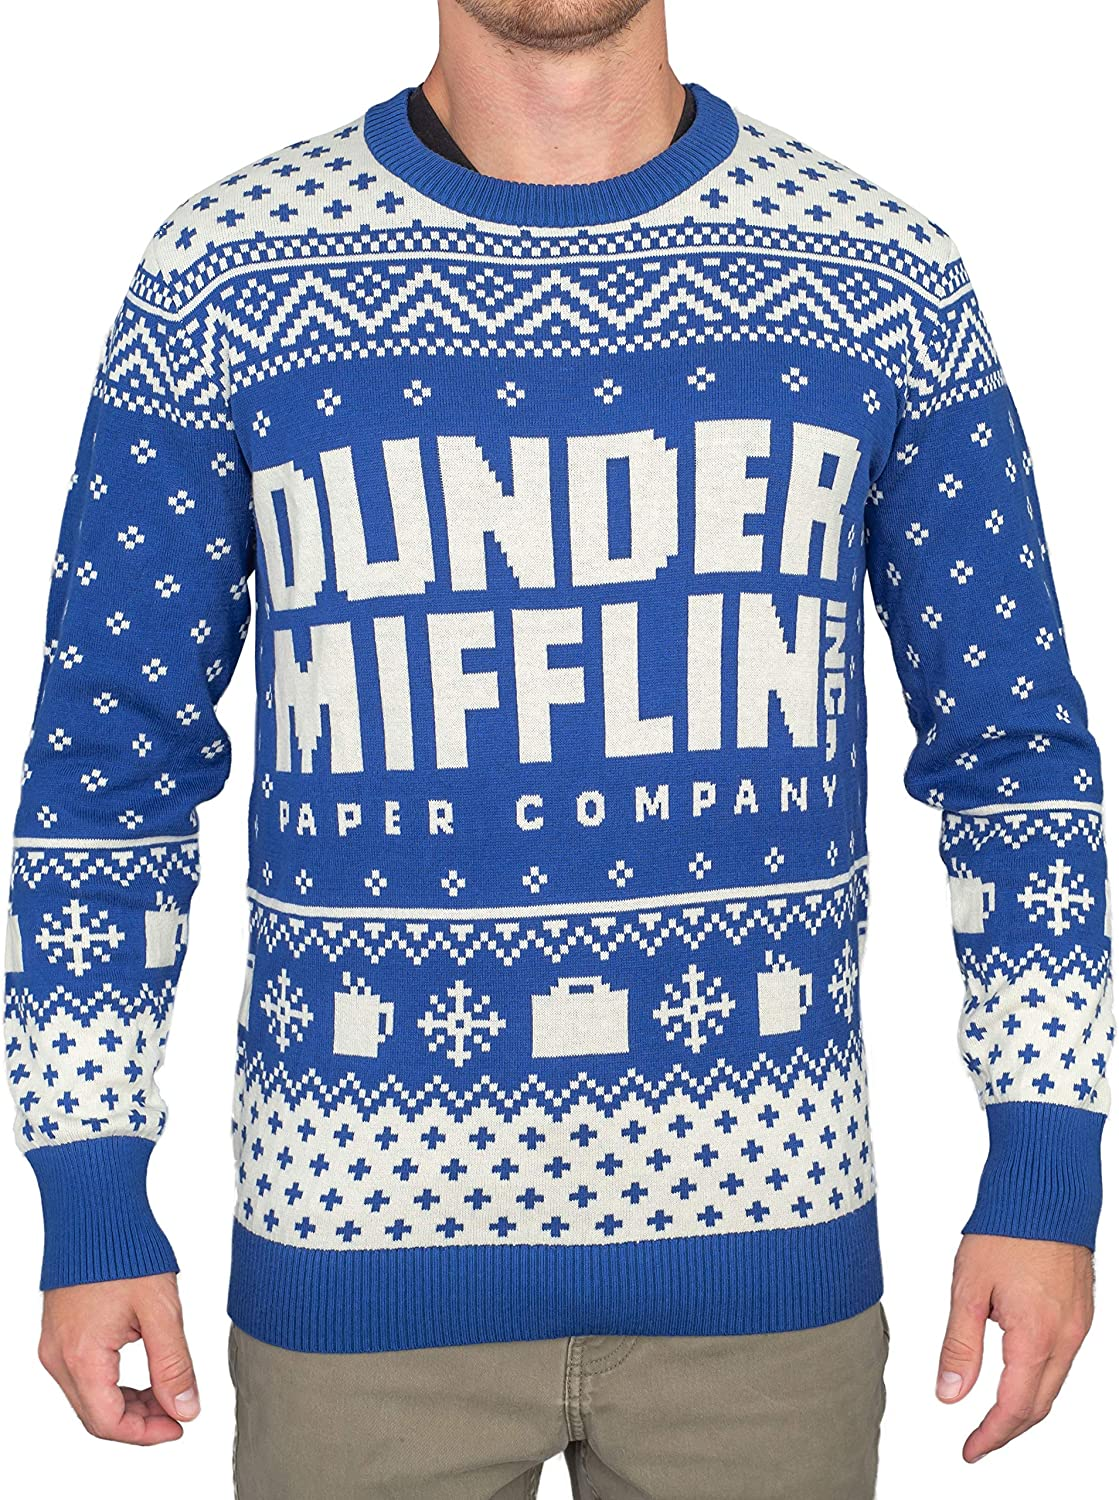 Top 10 Ugly Sweater Christmas Men The Office